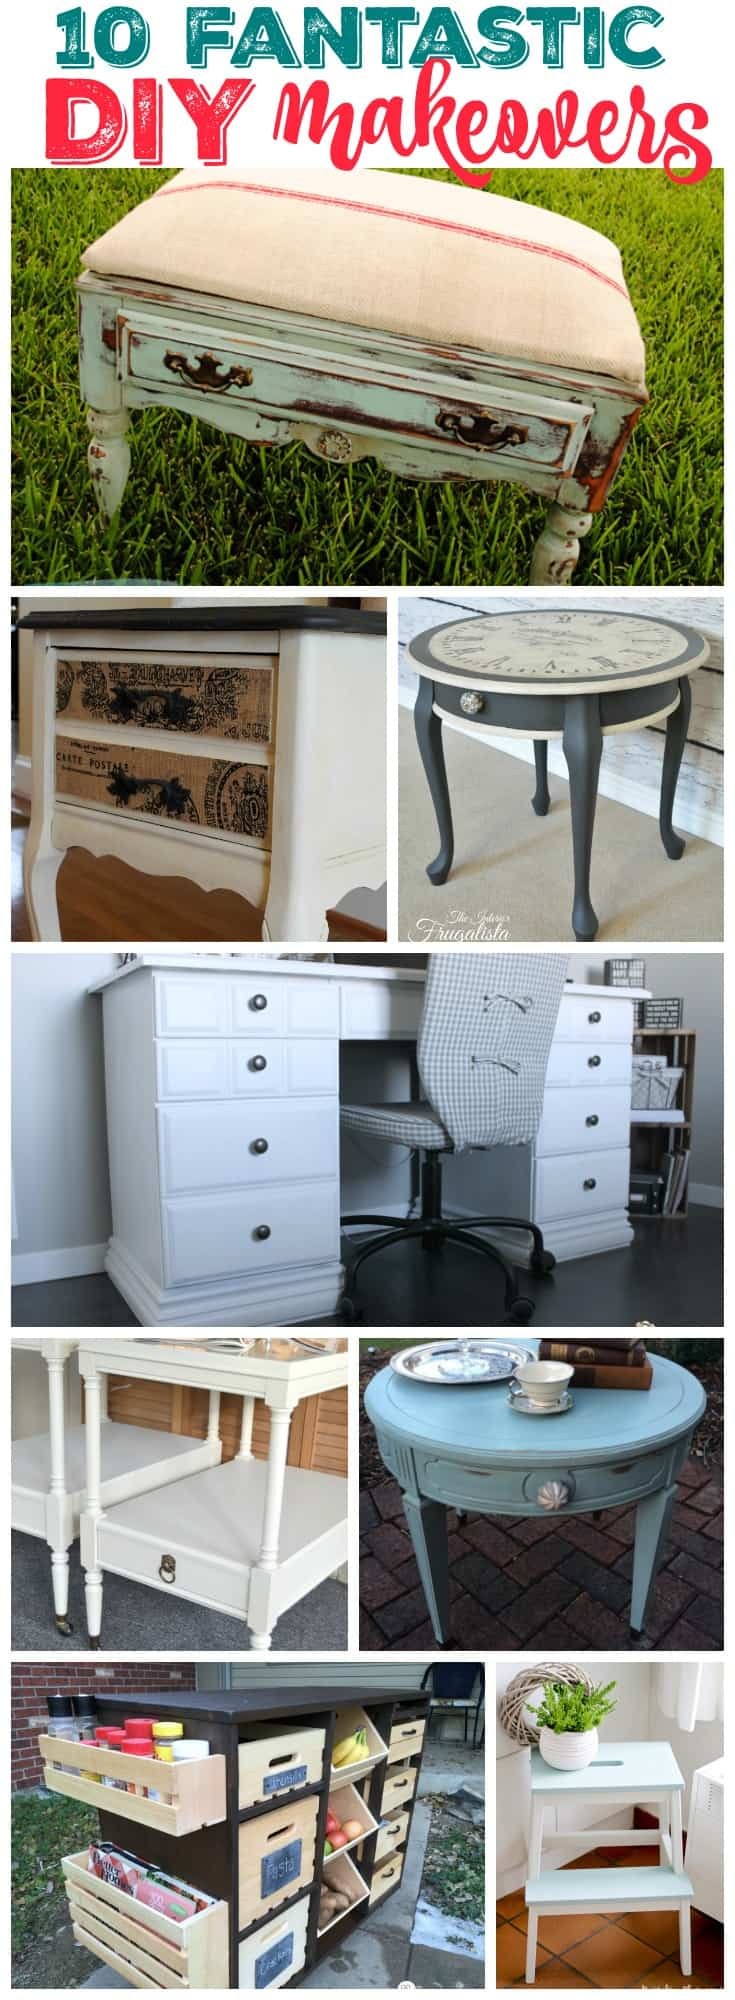 10-Fantastic-DIY-Makeover-Projects-shared-at-Work-it-Wednesday